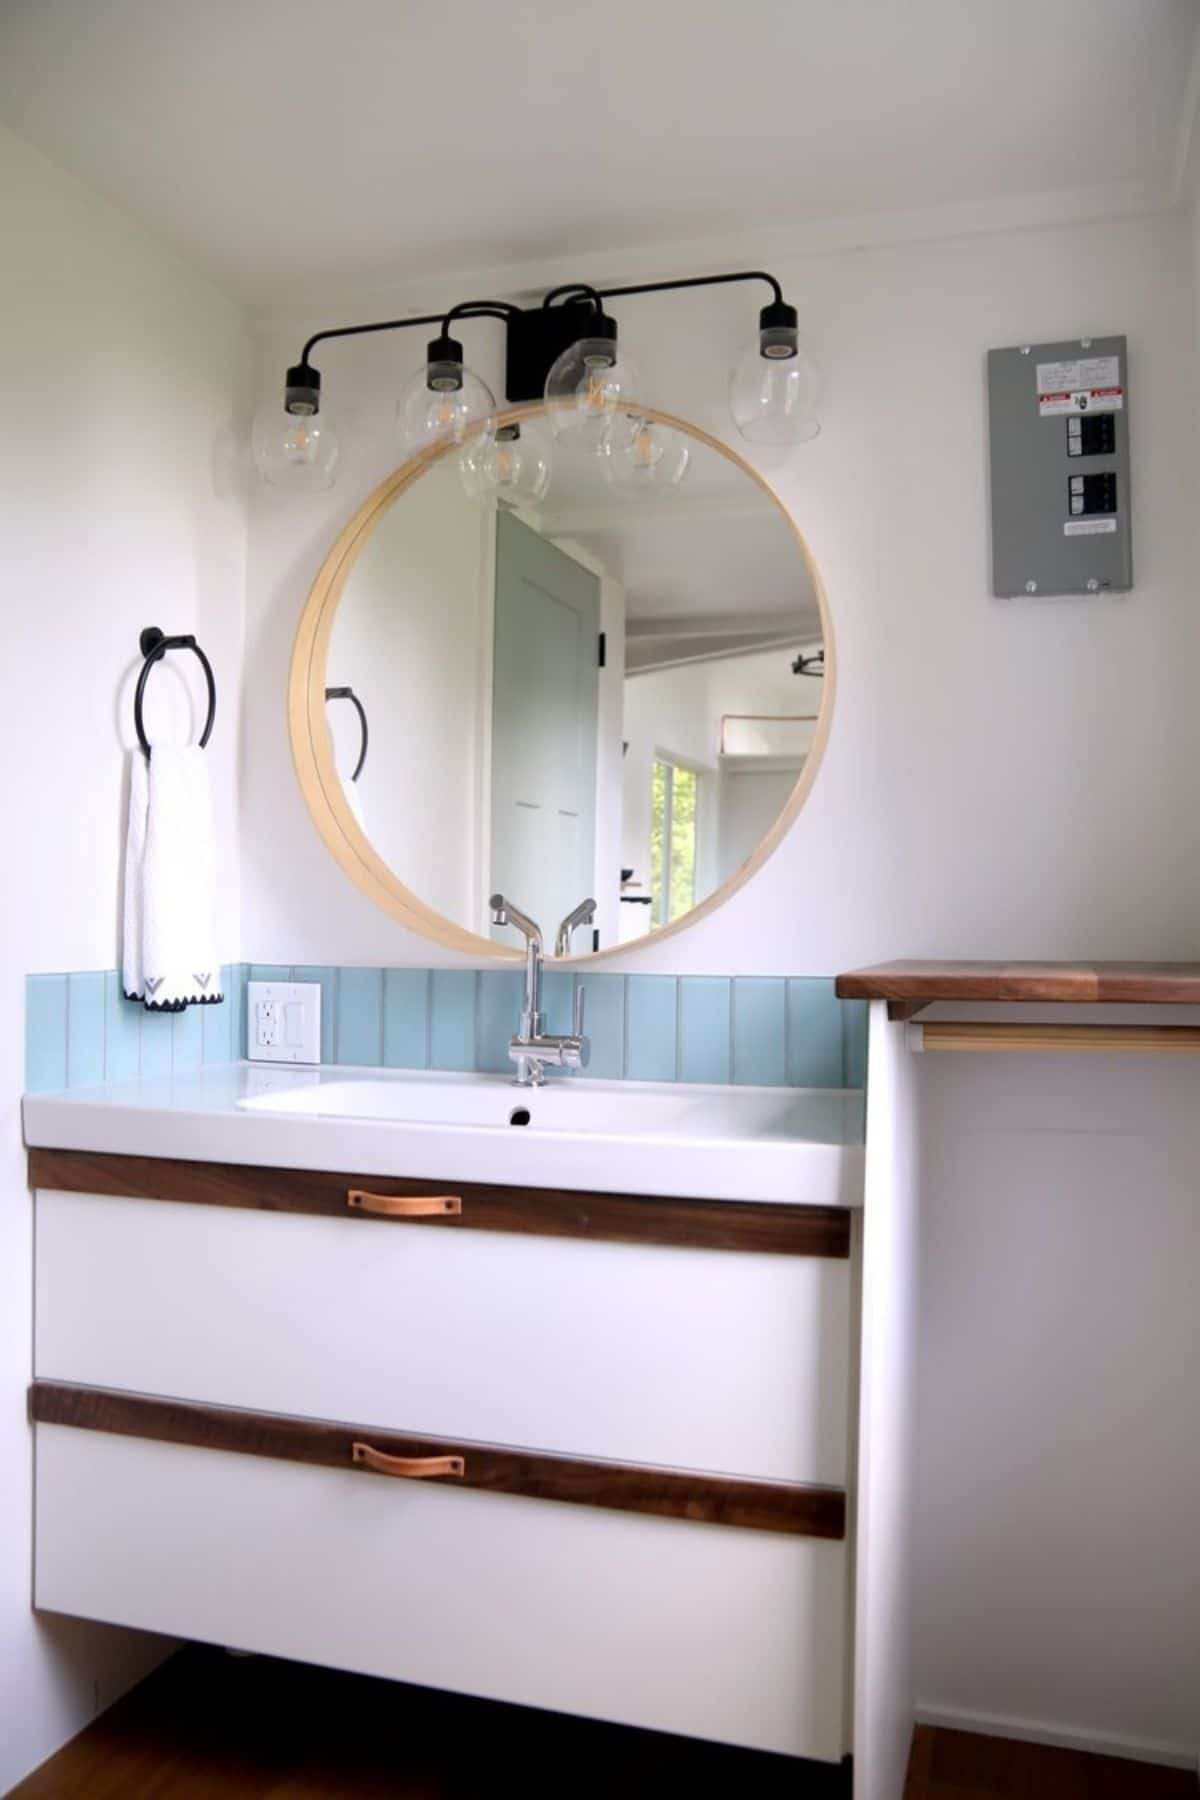 Vanity against white wall with gold accents and round mirror above